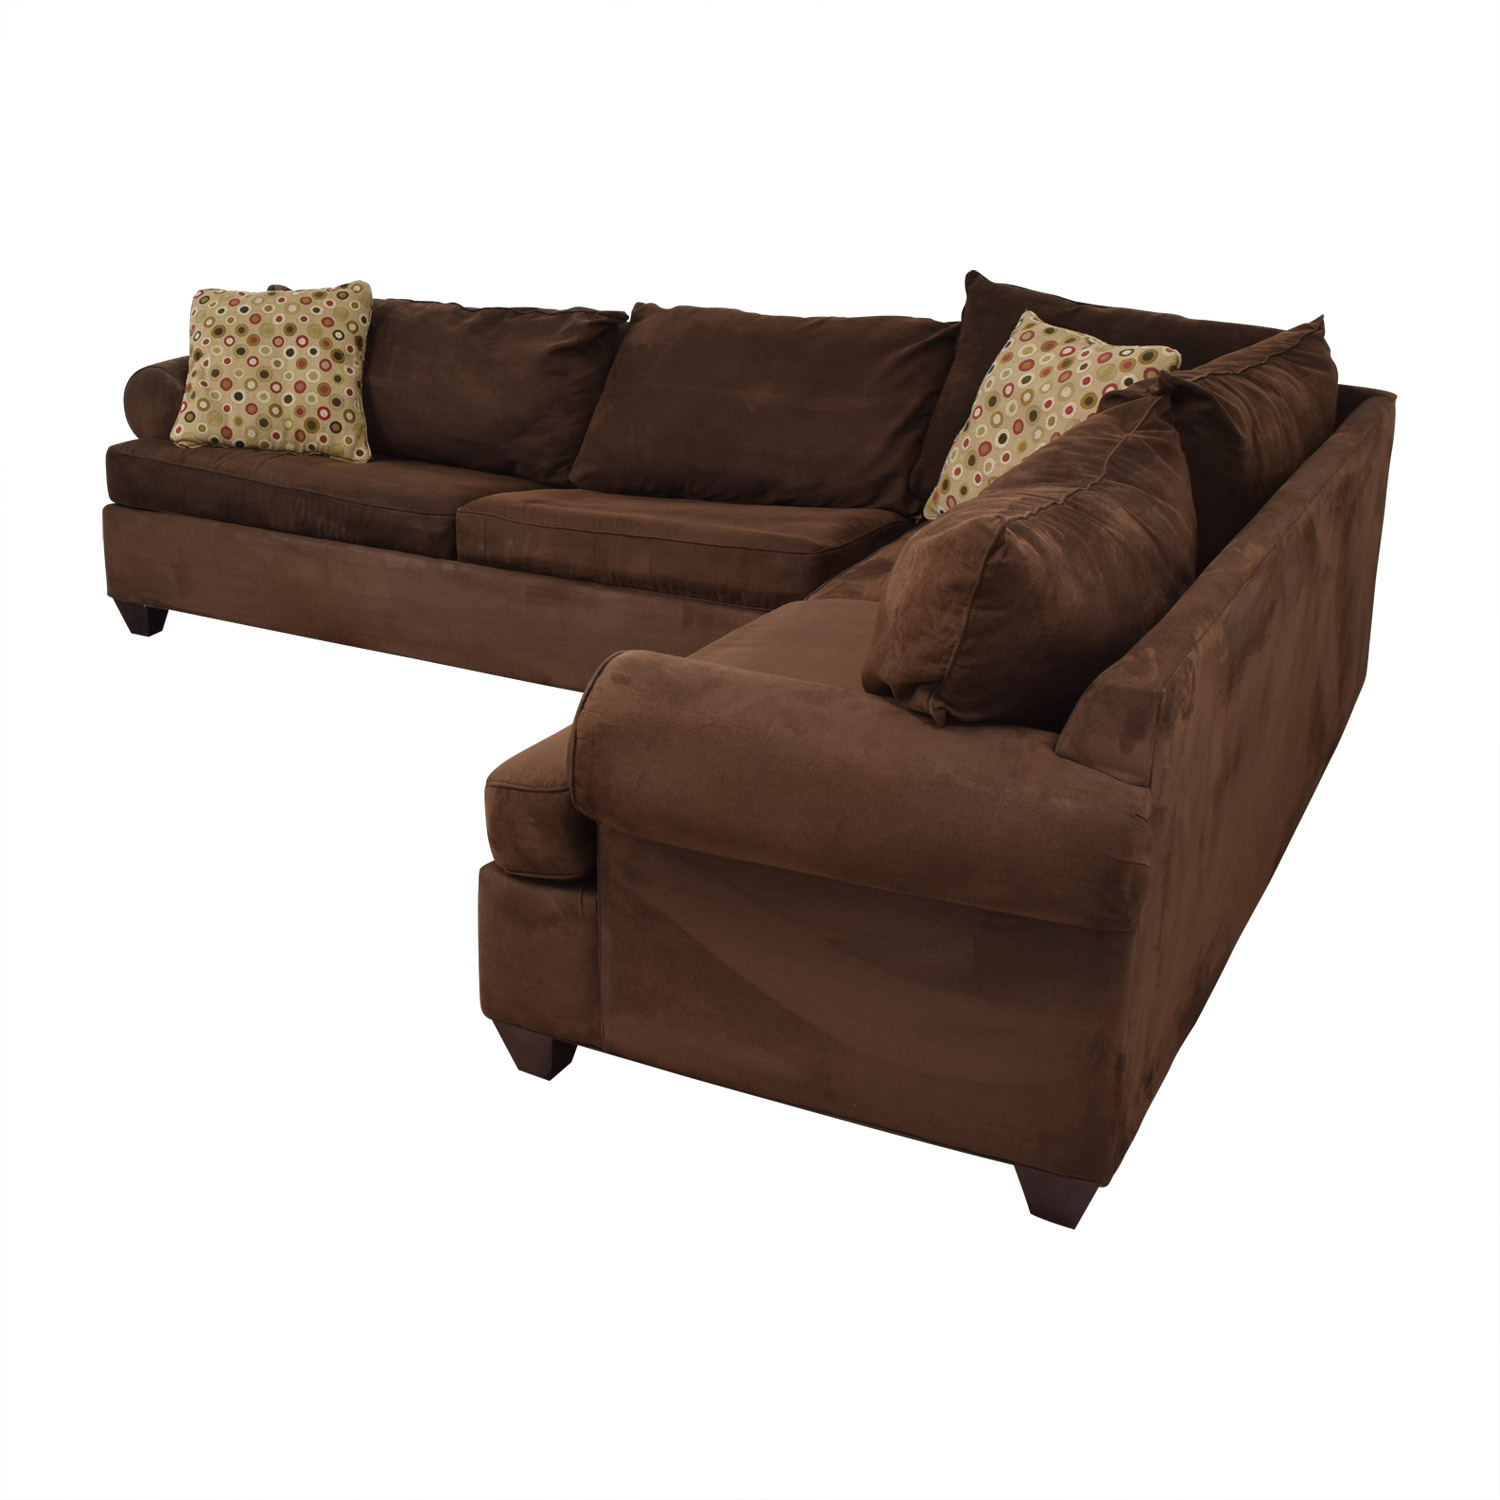 buy Raymour & Flanigan Raymour & Flanigan Brown L-Shaped Sectional With Pull-Out Convertible Bed online